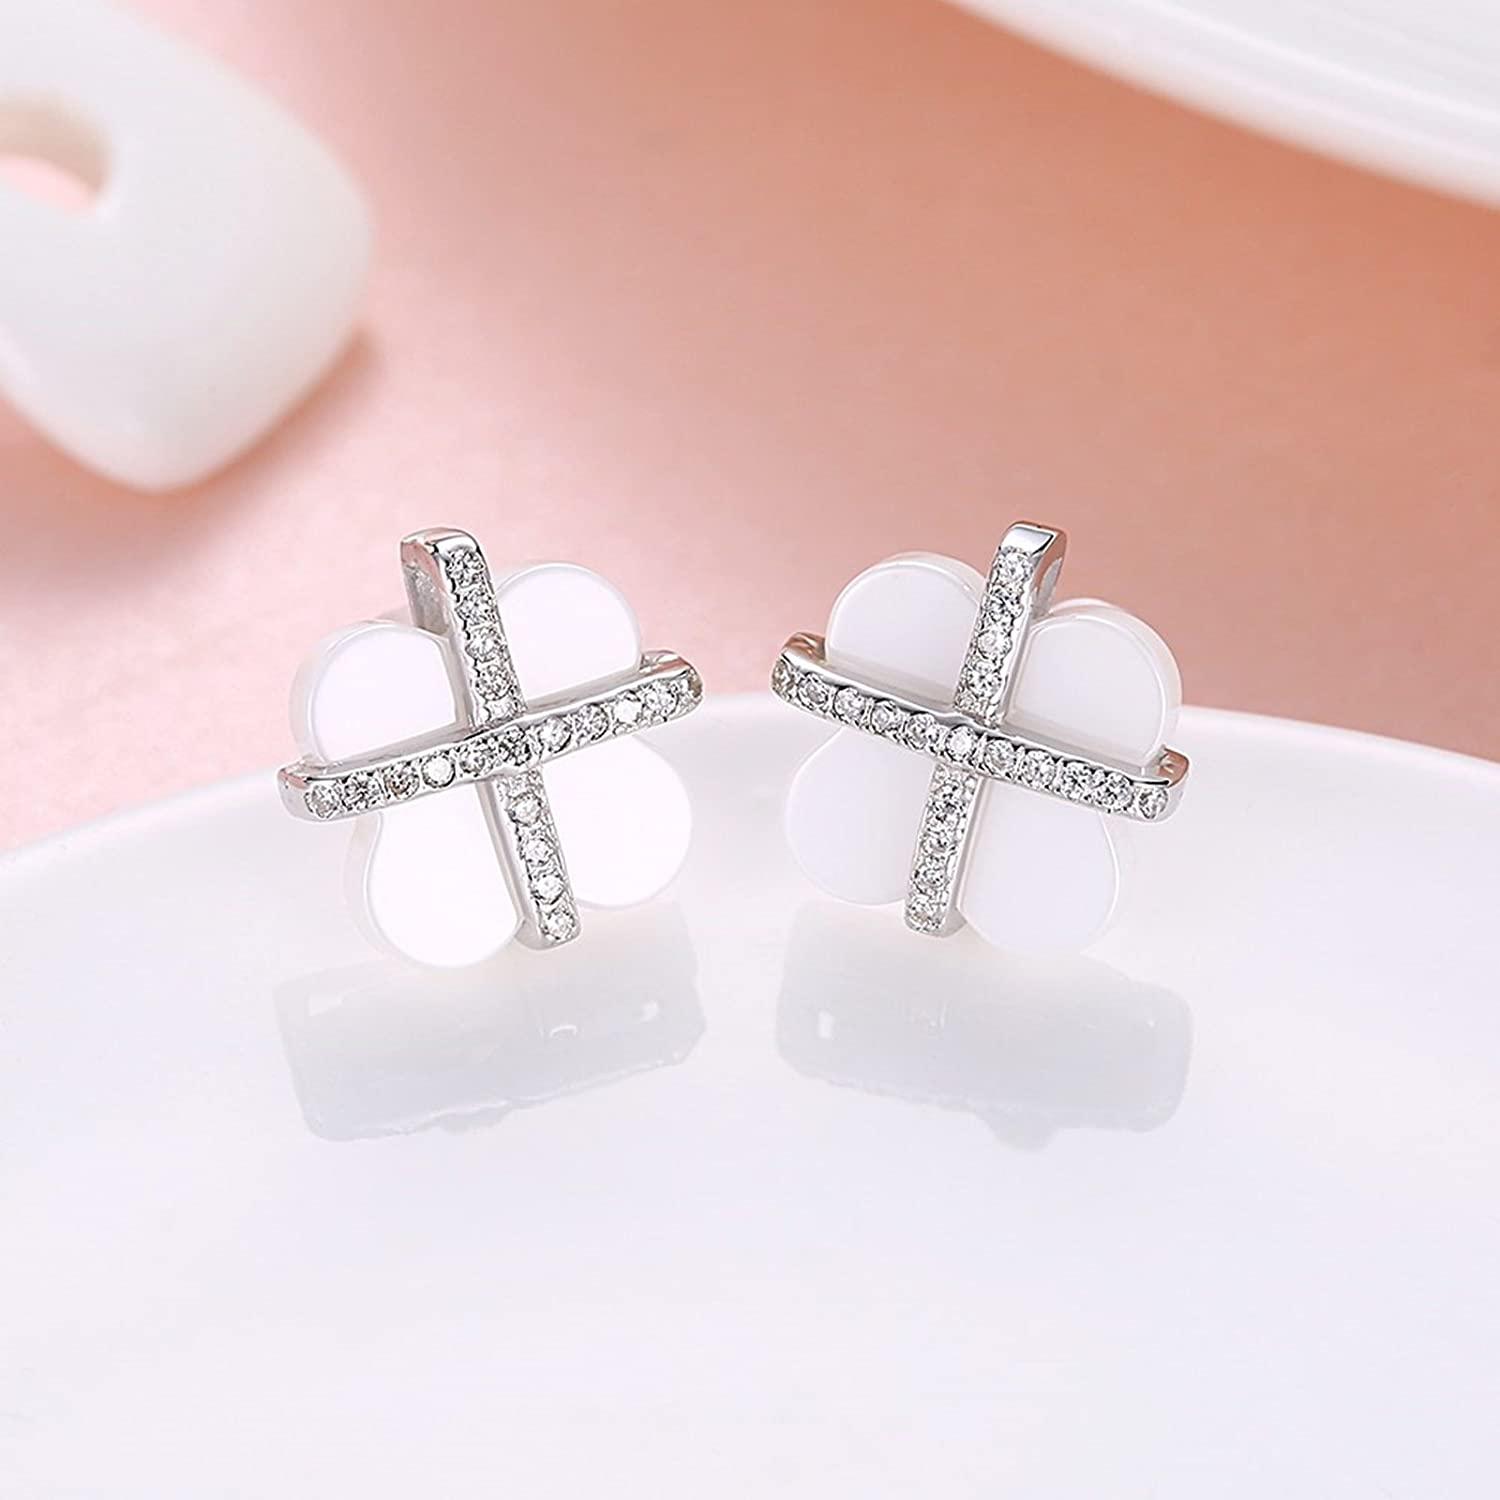 MoAndy S925 Sterling Silver Stud Earrings for Girls Women Cubic Zirconia